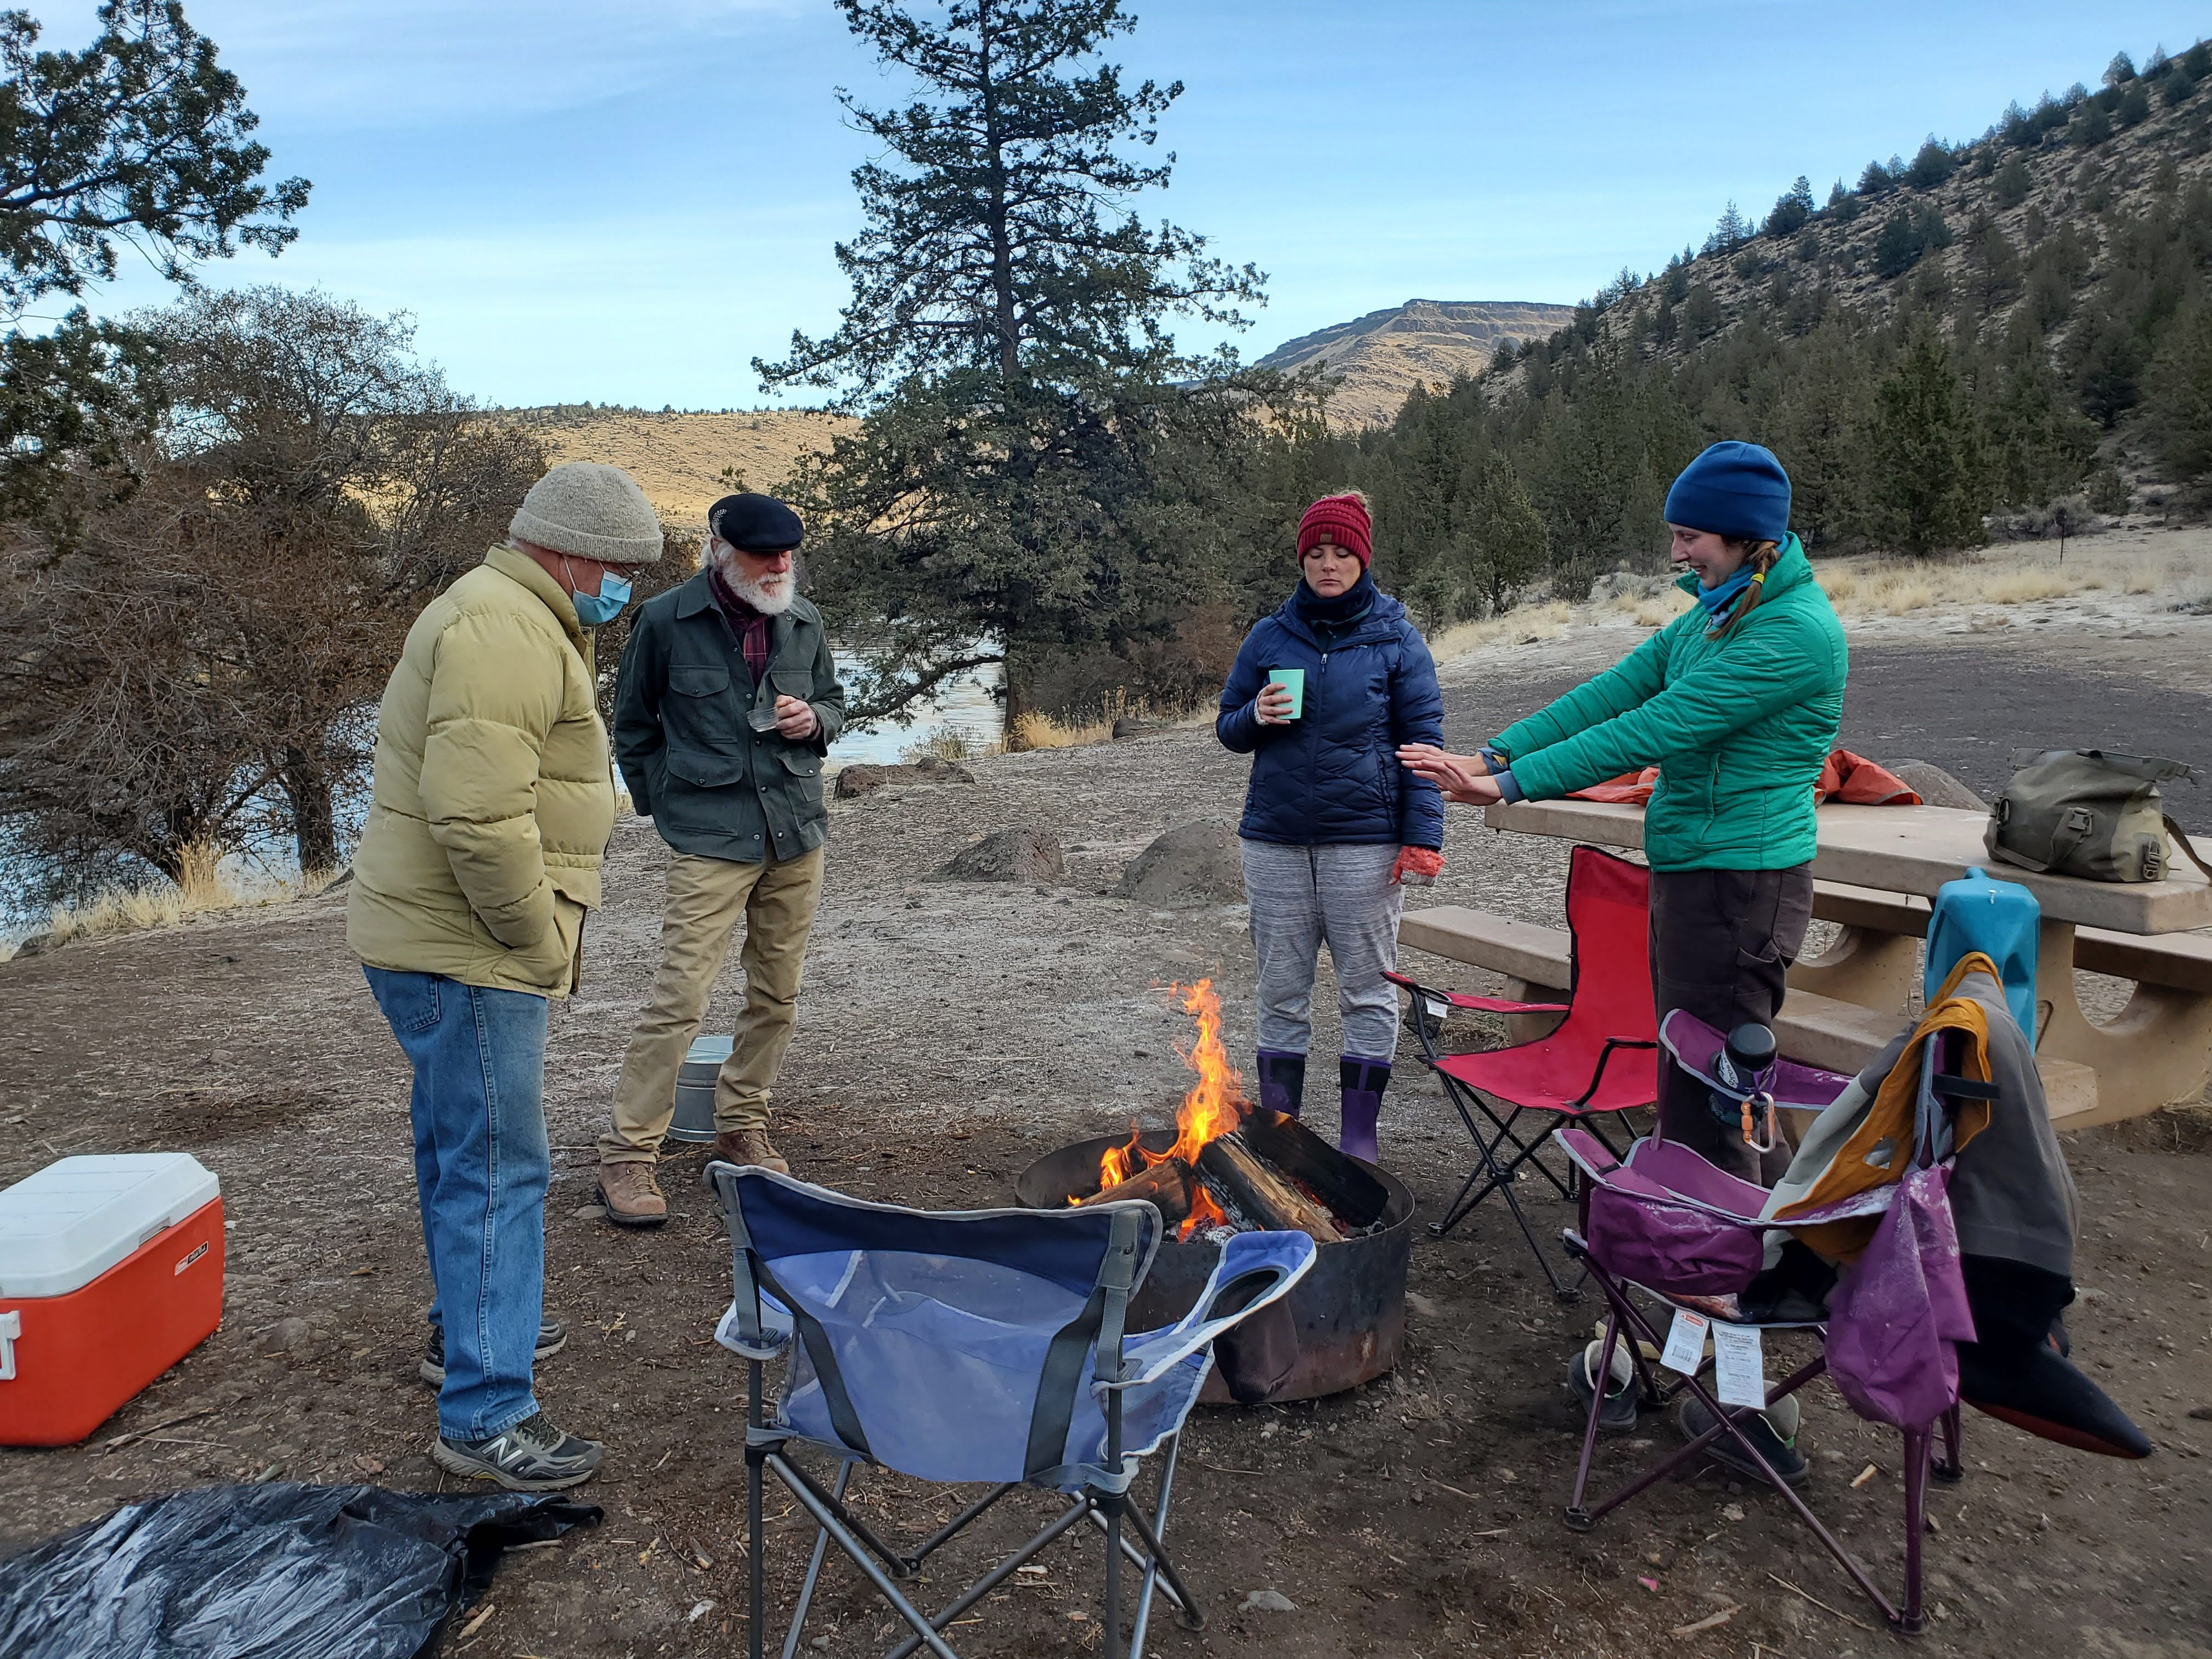 The project team warms up by a fire at their campsite before starting a long (and chilly) day of sampling.